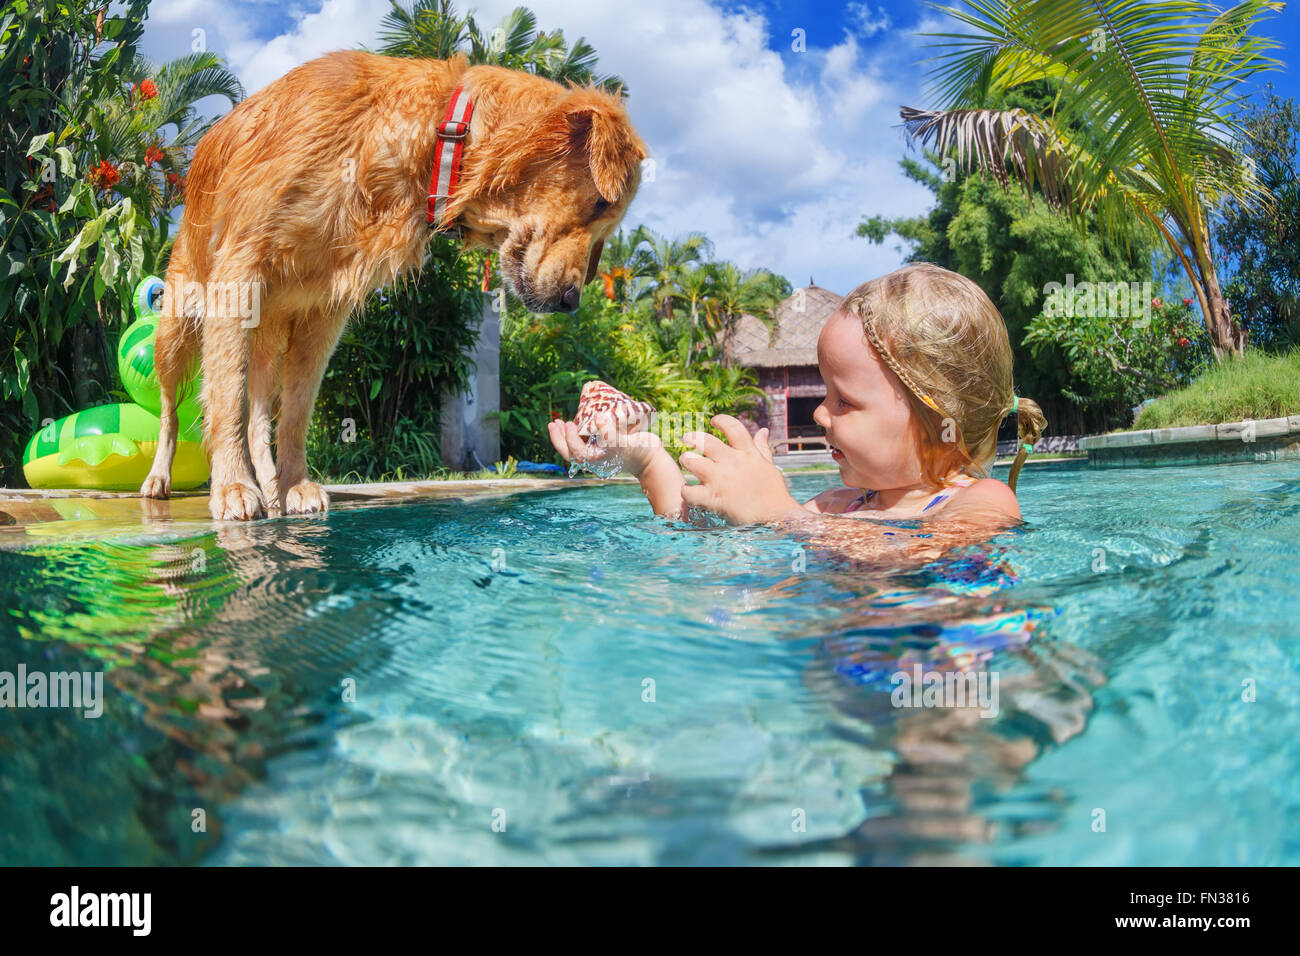 Little child play with fun and train golden labrador retriever puppy in swimming pool -  dive underwater to retrieve - Stock Image